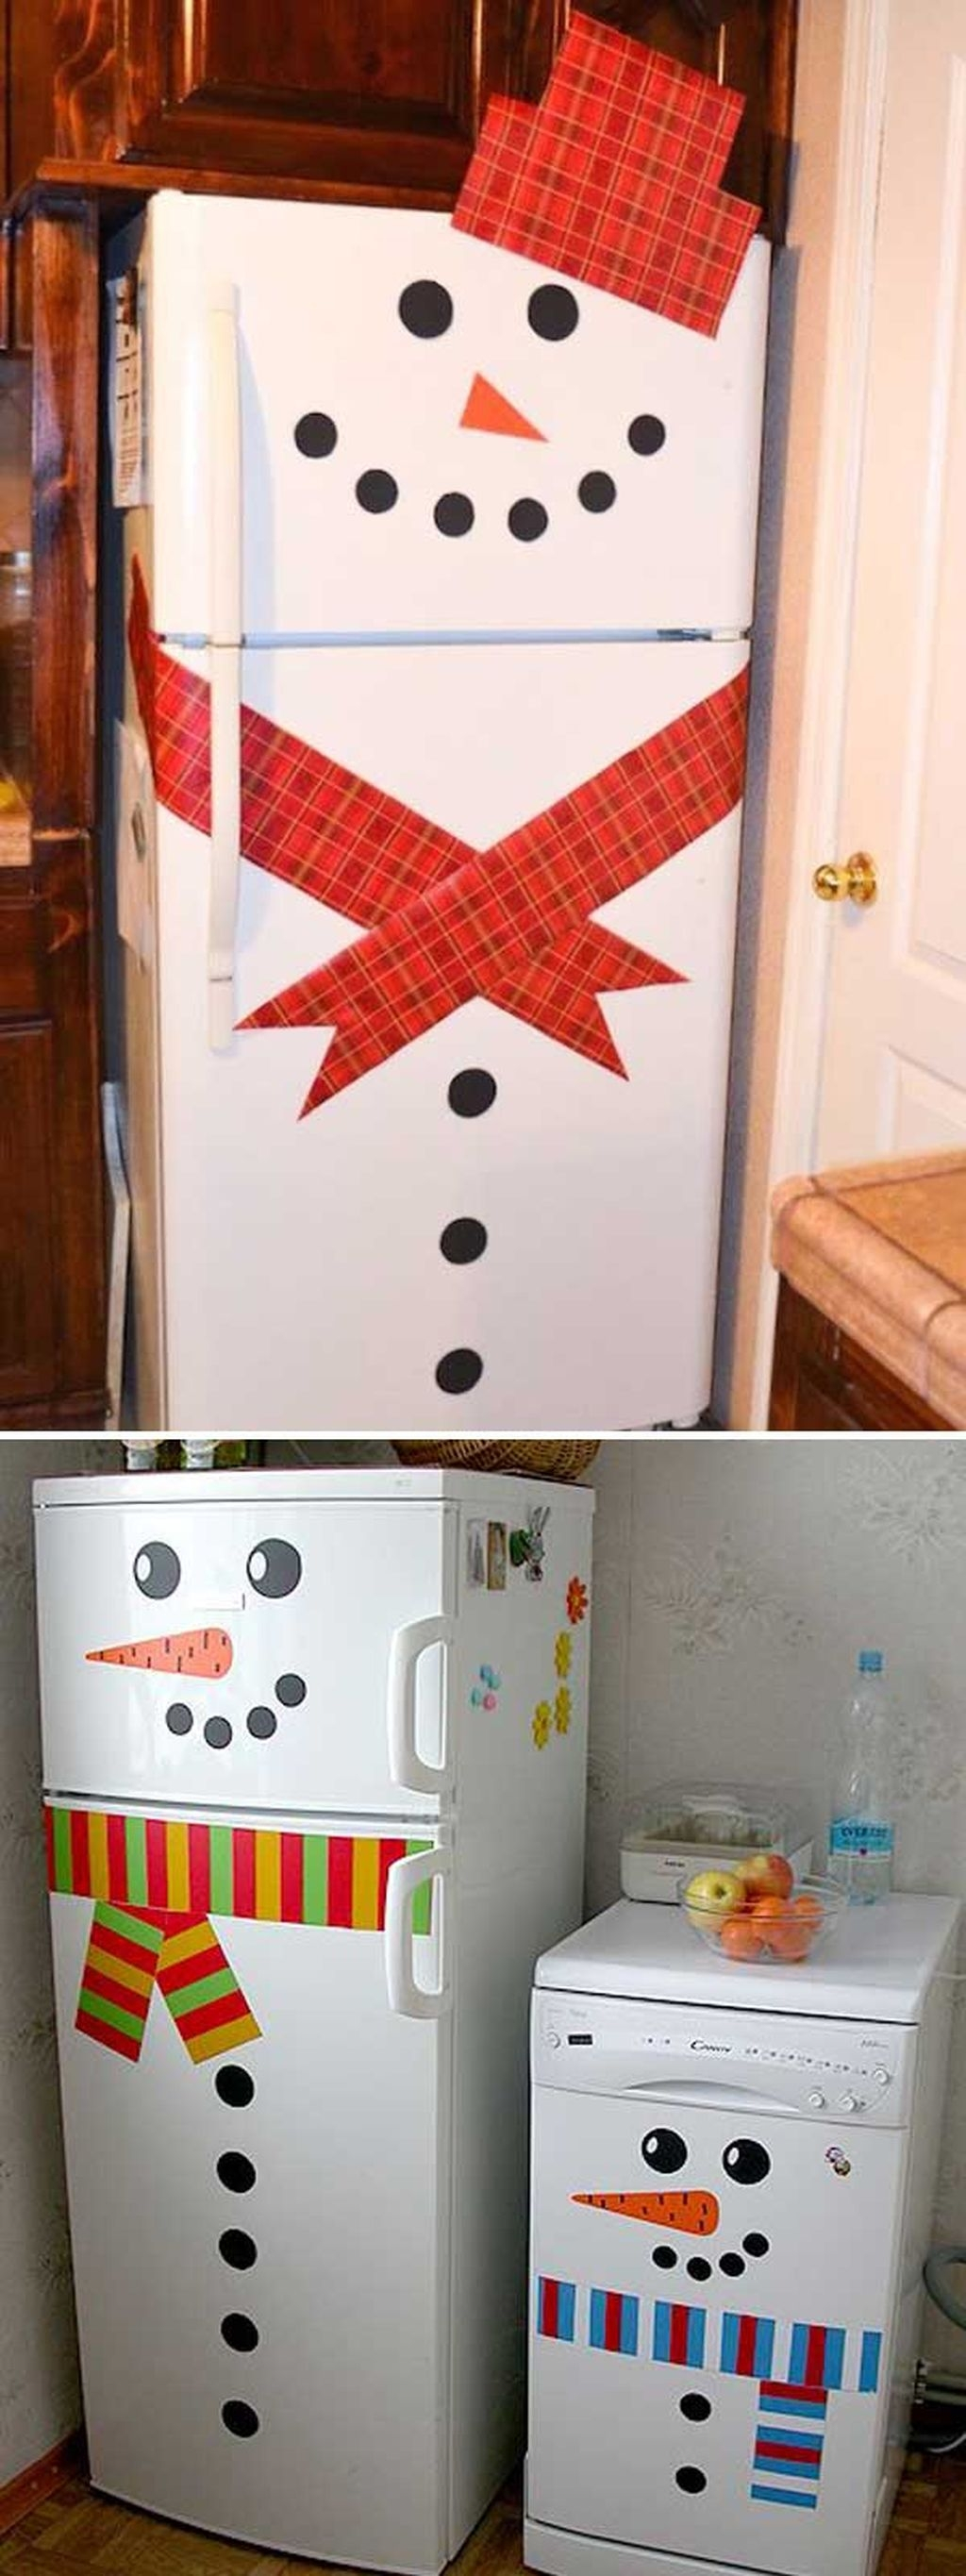 Cute And Cool Snowman Christmas Decoration Ideas 14